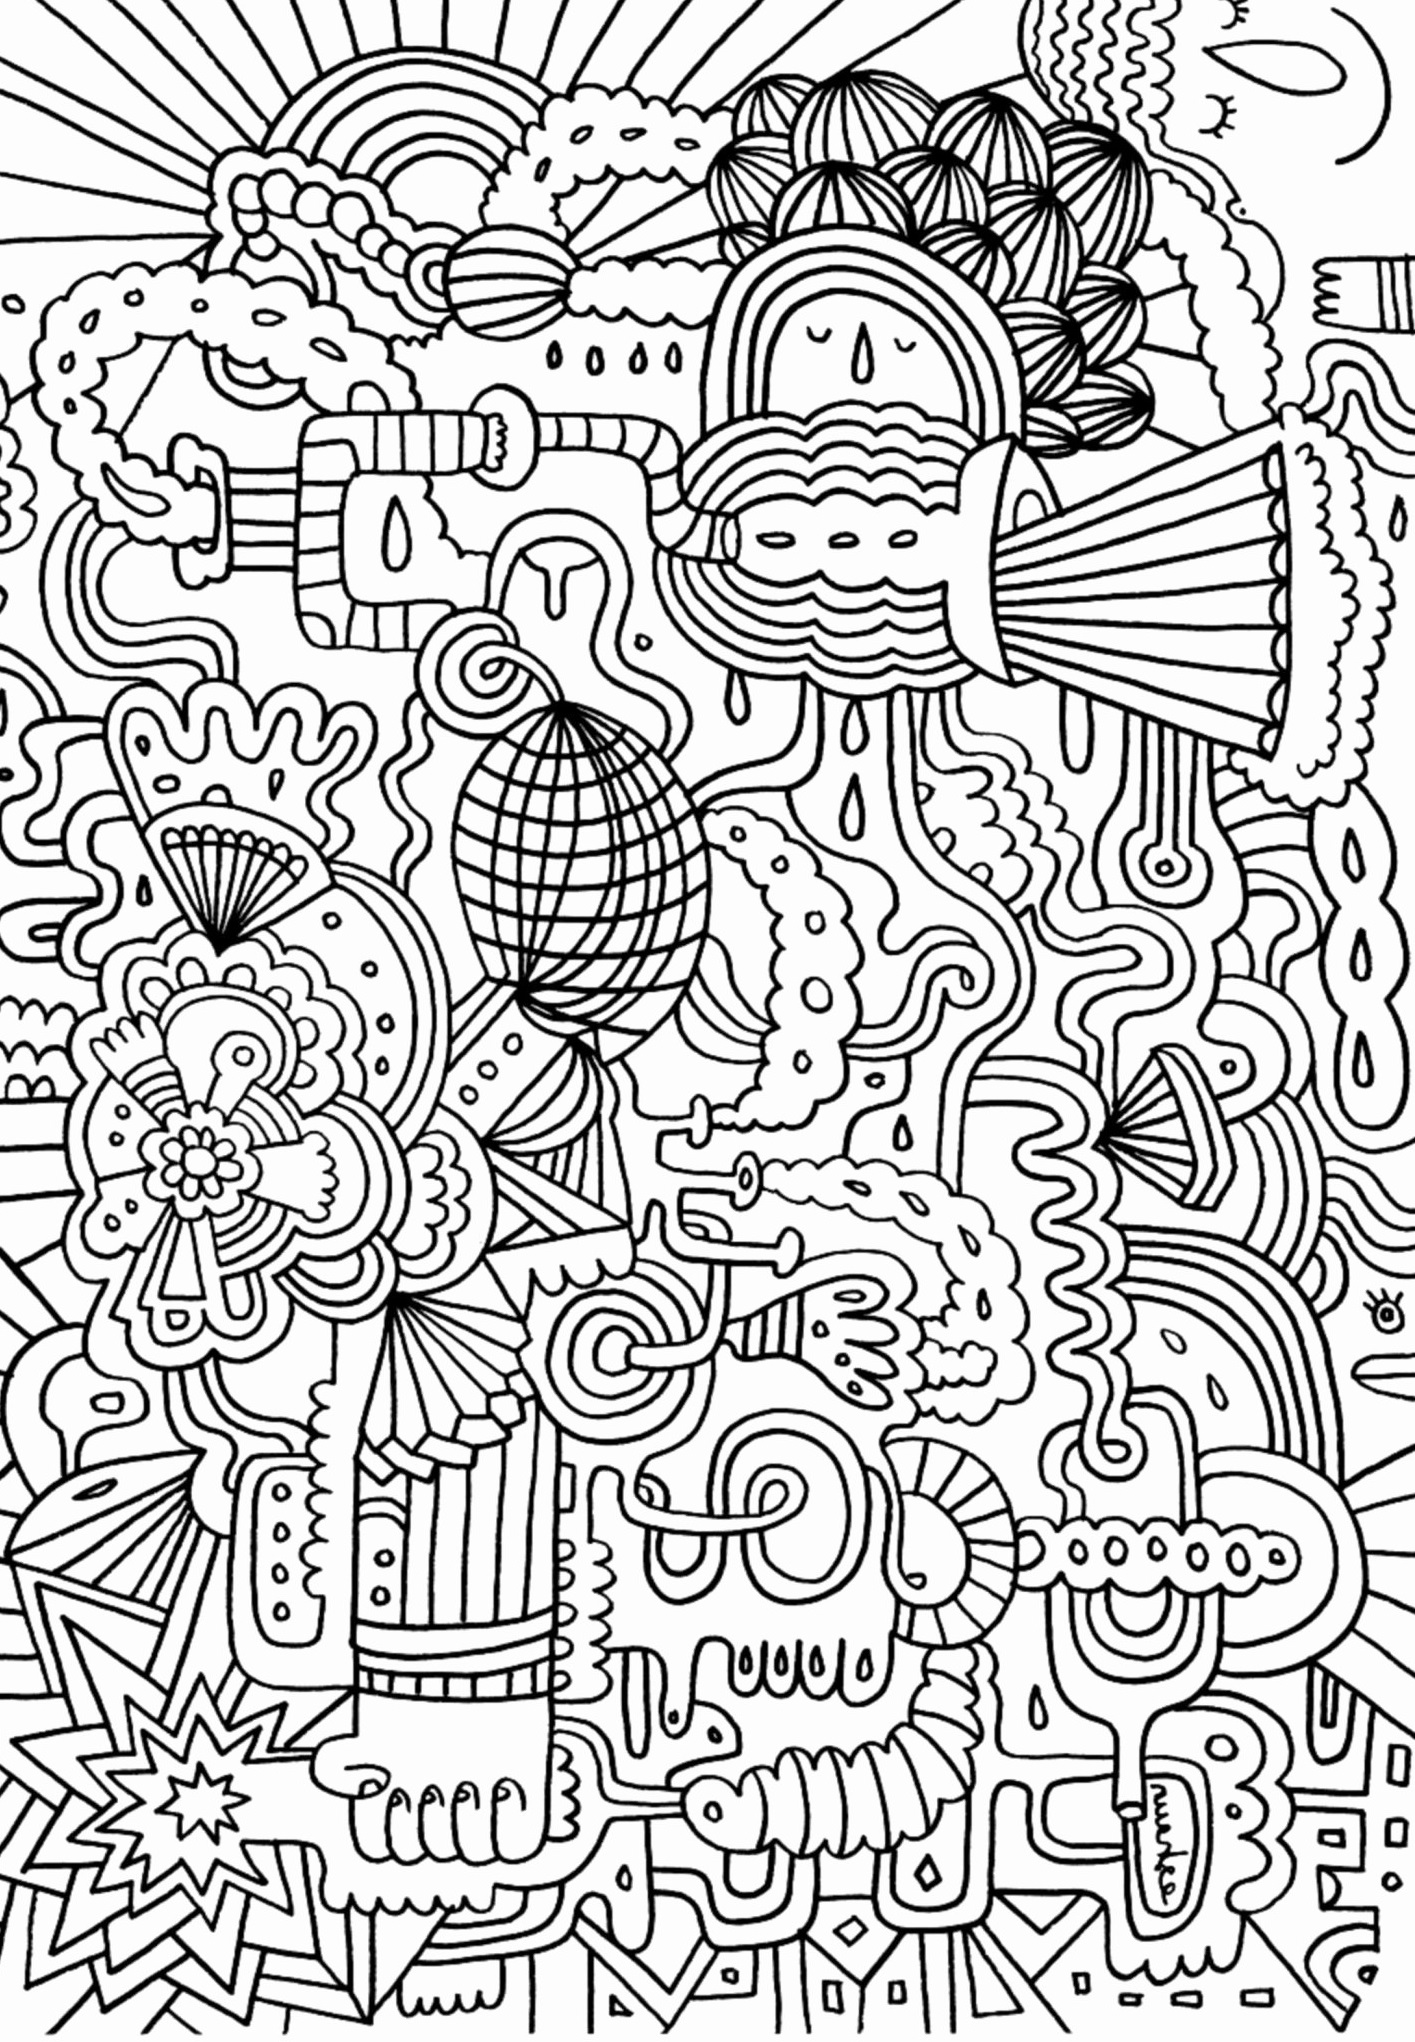 coloring pages printable for teenagers doodle coloring pages best coloring pages for kids for coloring printable pages teenagers